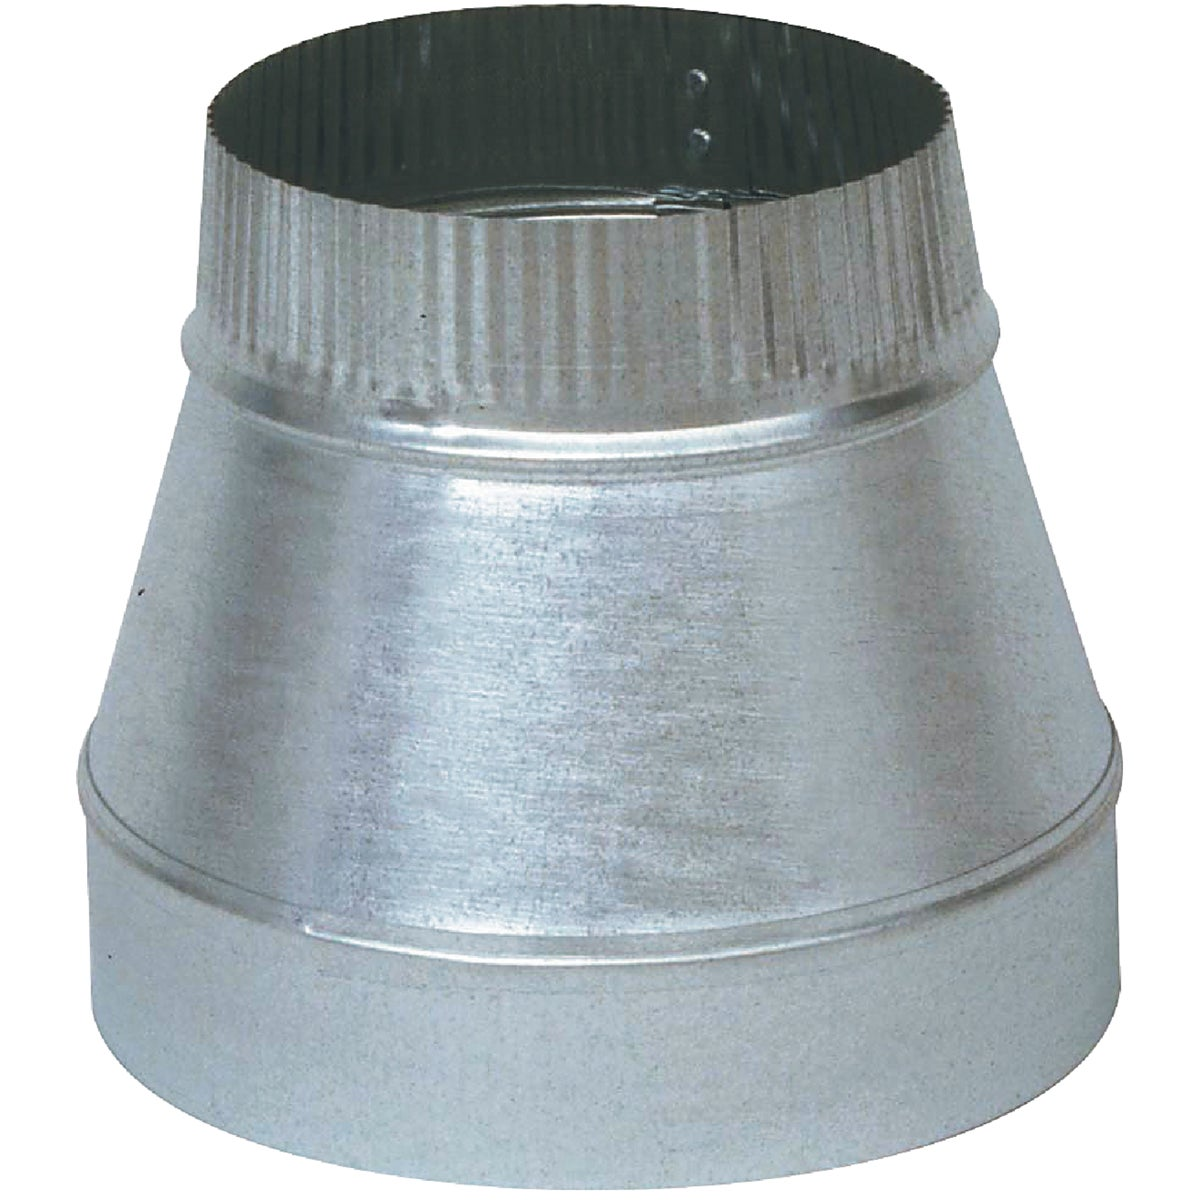 6X4 GALV REDUCER - GV1417 by Imperial Mfg Group